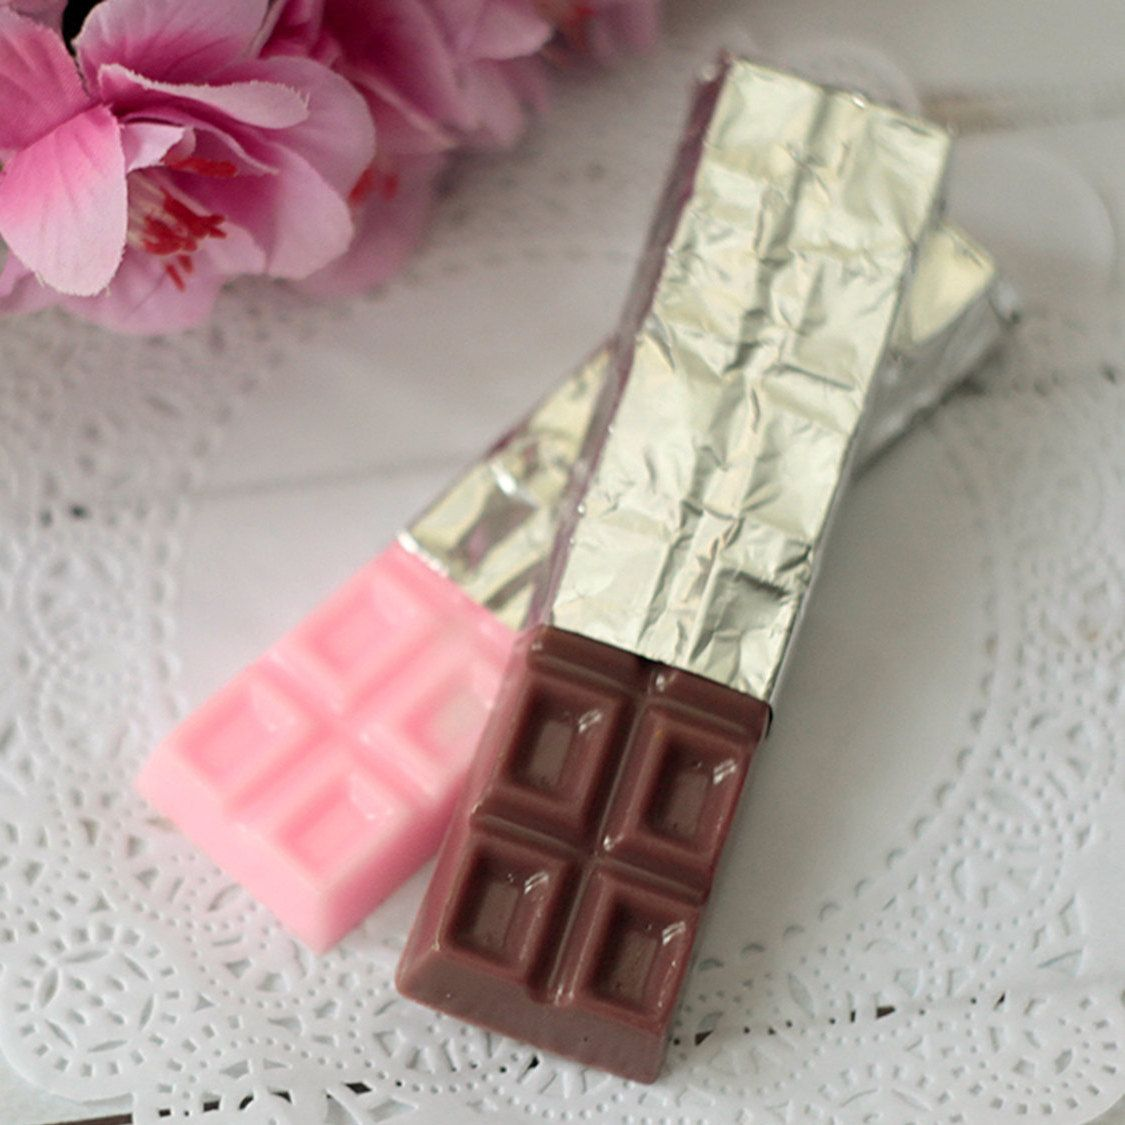 Handmade Food Soap Chocolate Bar Gift For Him Ideas By Giveasmile On Etsy